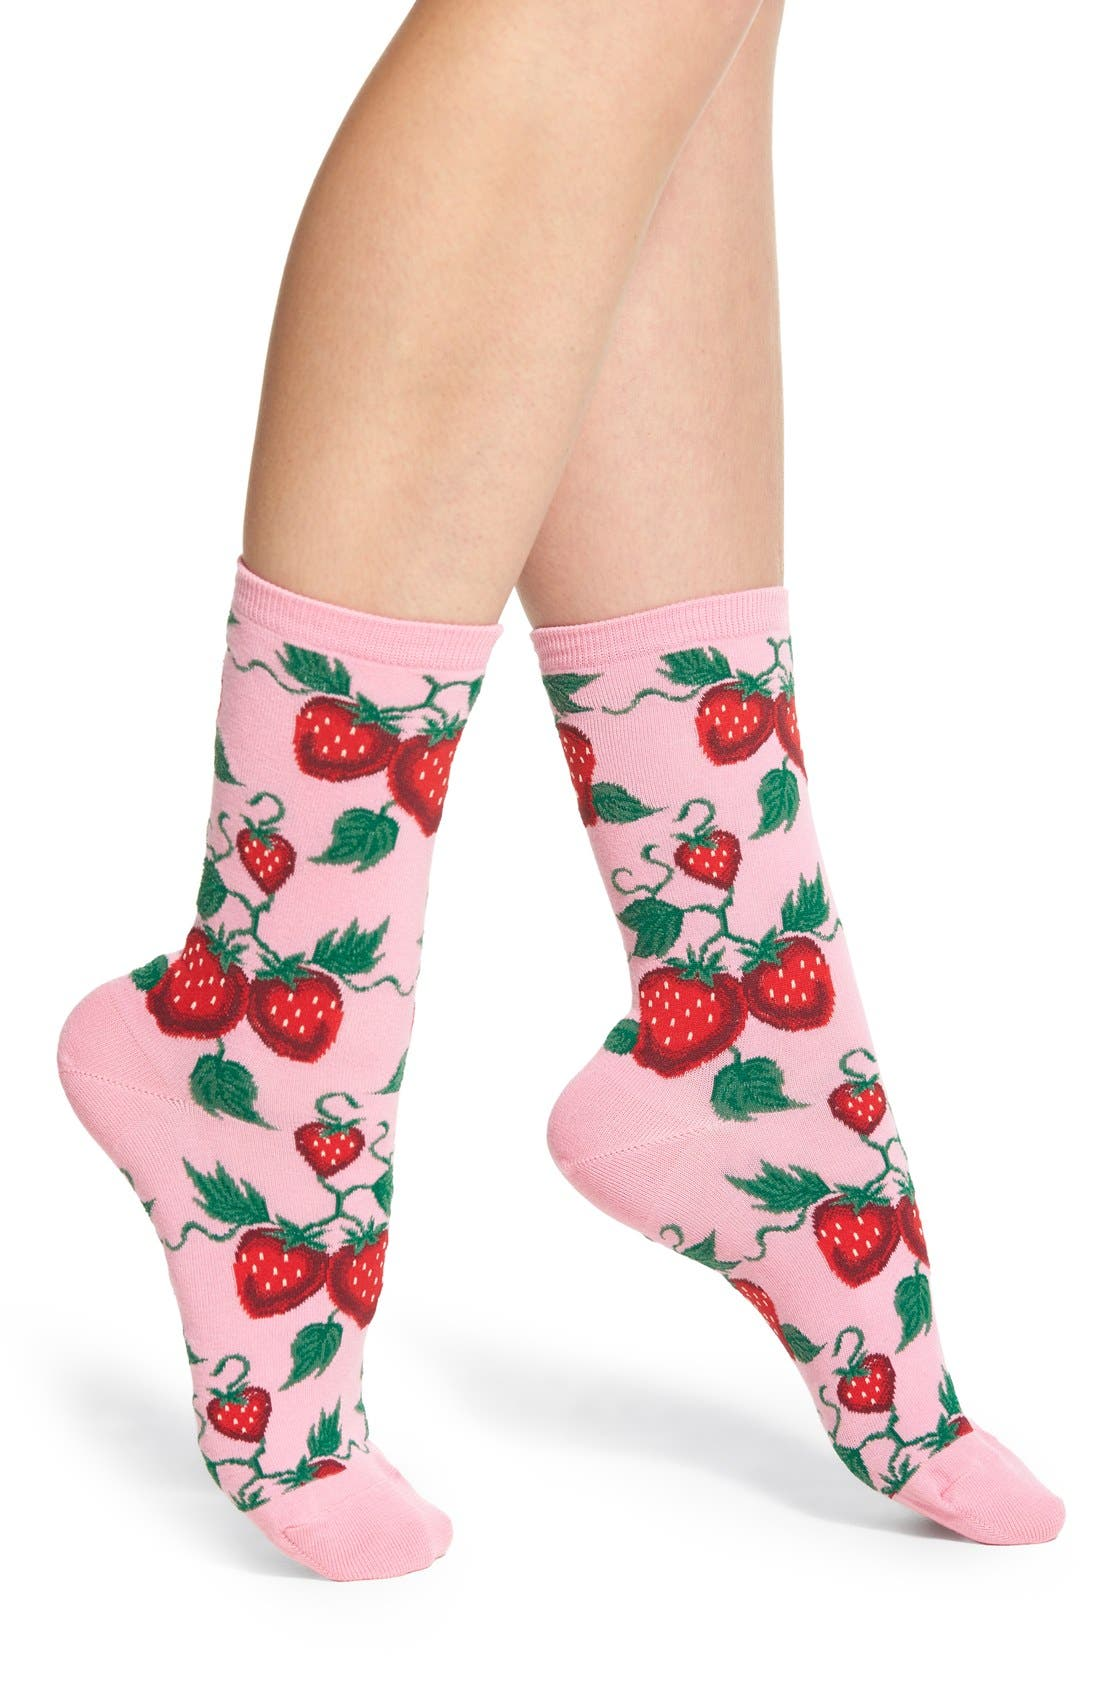 'Strawberries' Socks,                         Main,                         color, Pastel Pink